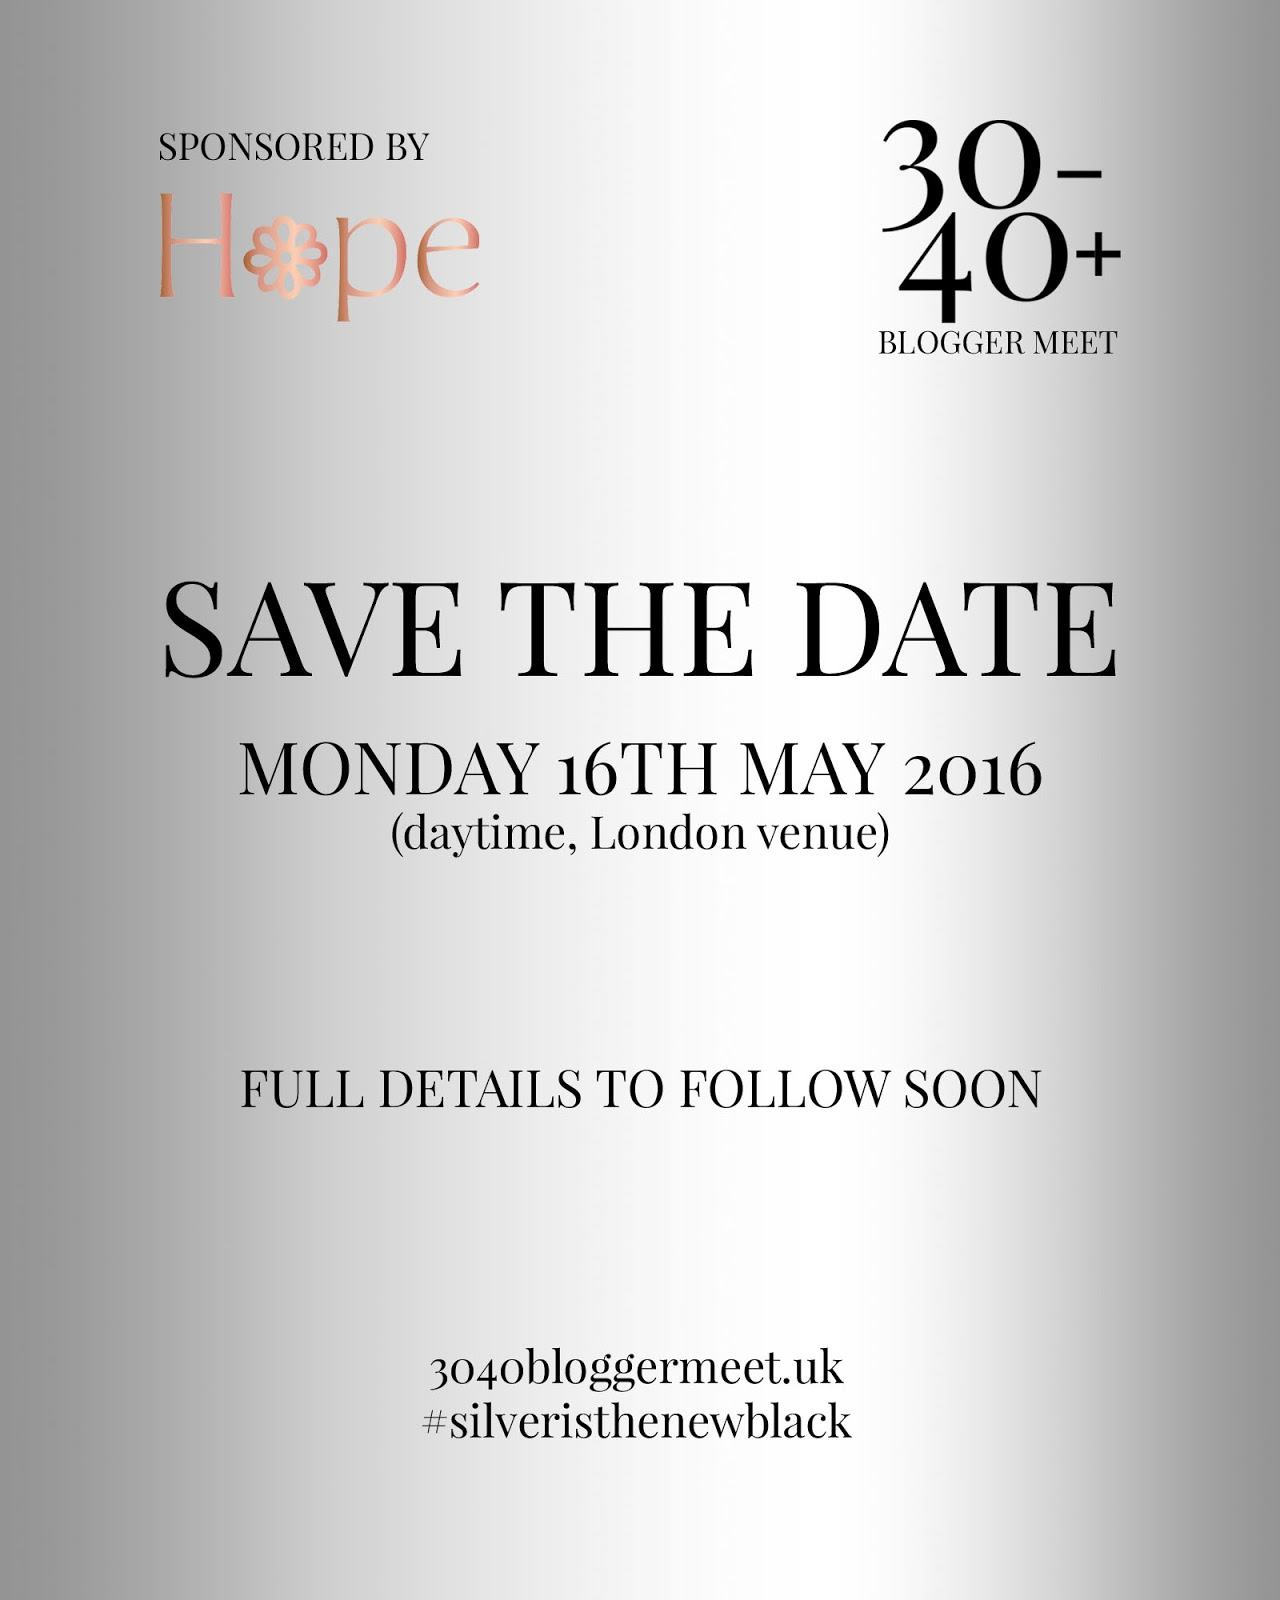 Save the Date - The 30-40+ Blogger Meet: Monday 16th May2016